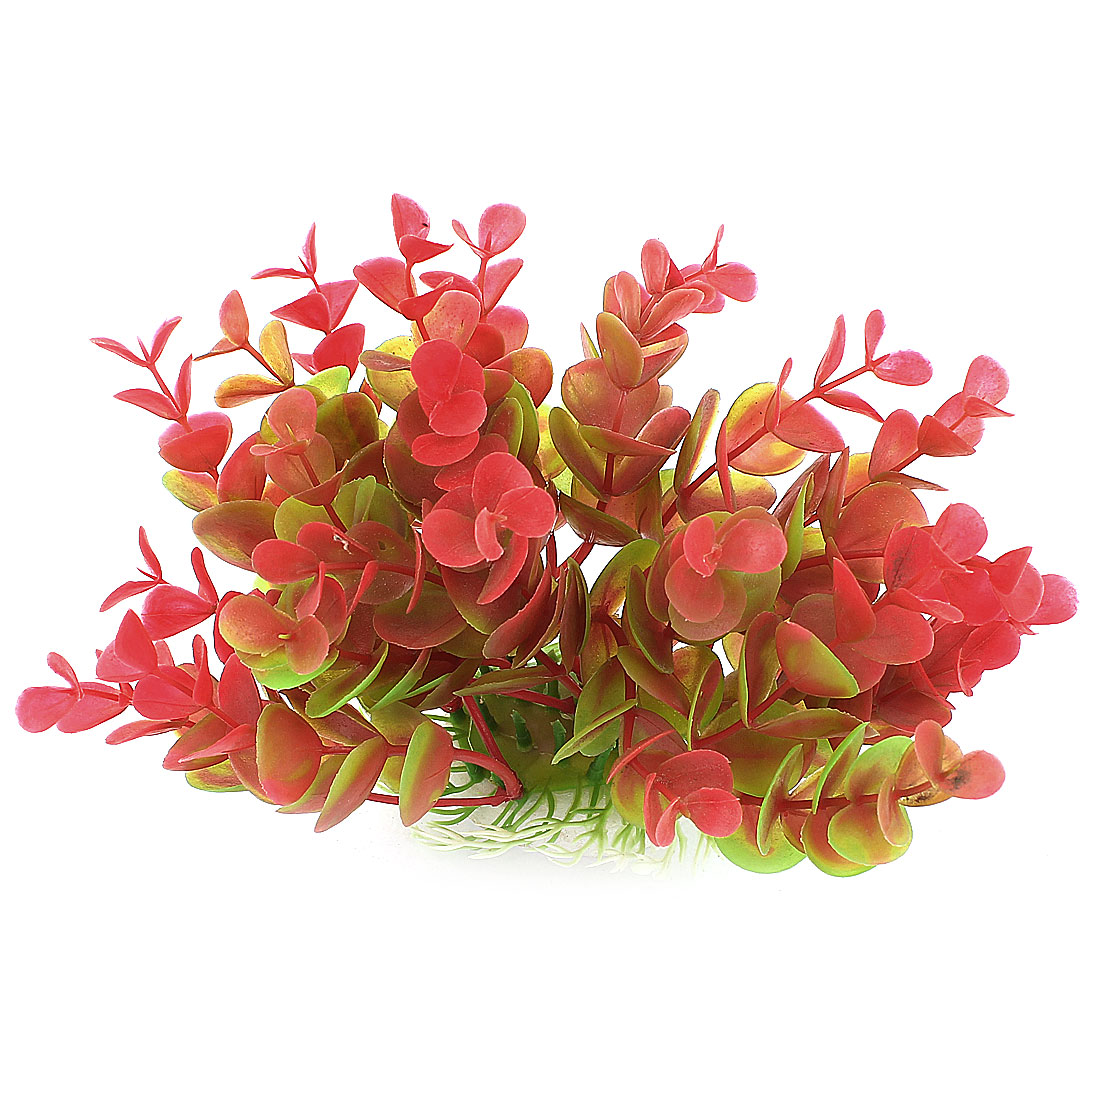 Aquarium Red Plastic Artificial Leaf Grass Plant Decoration 12cm Height